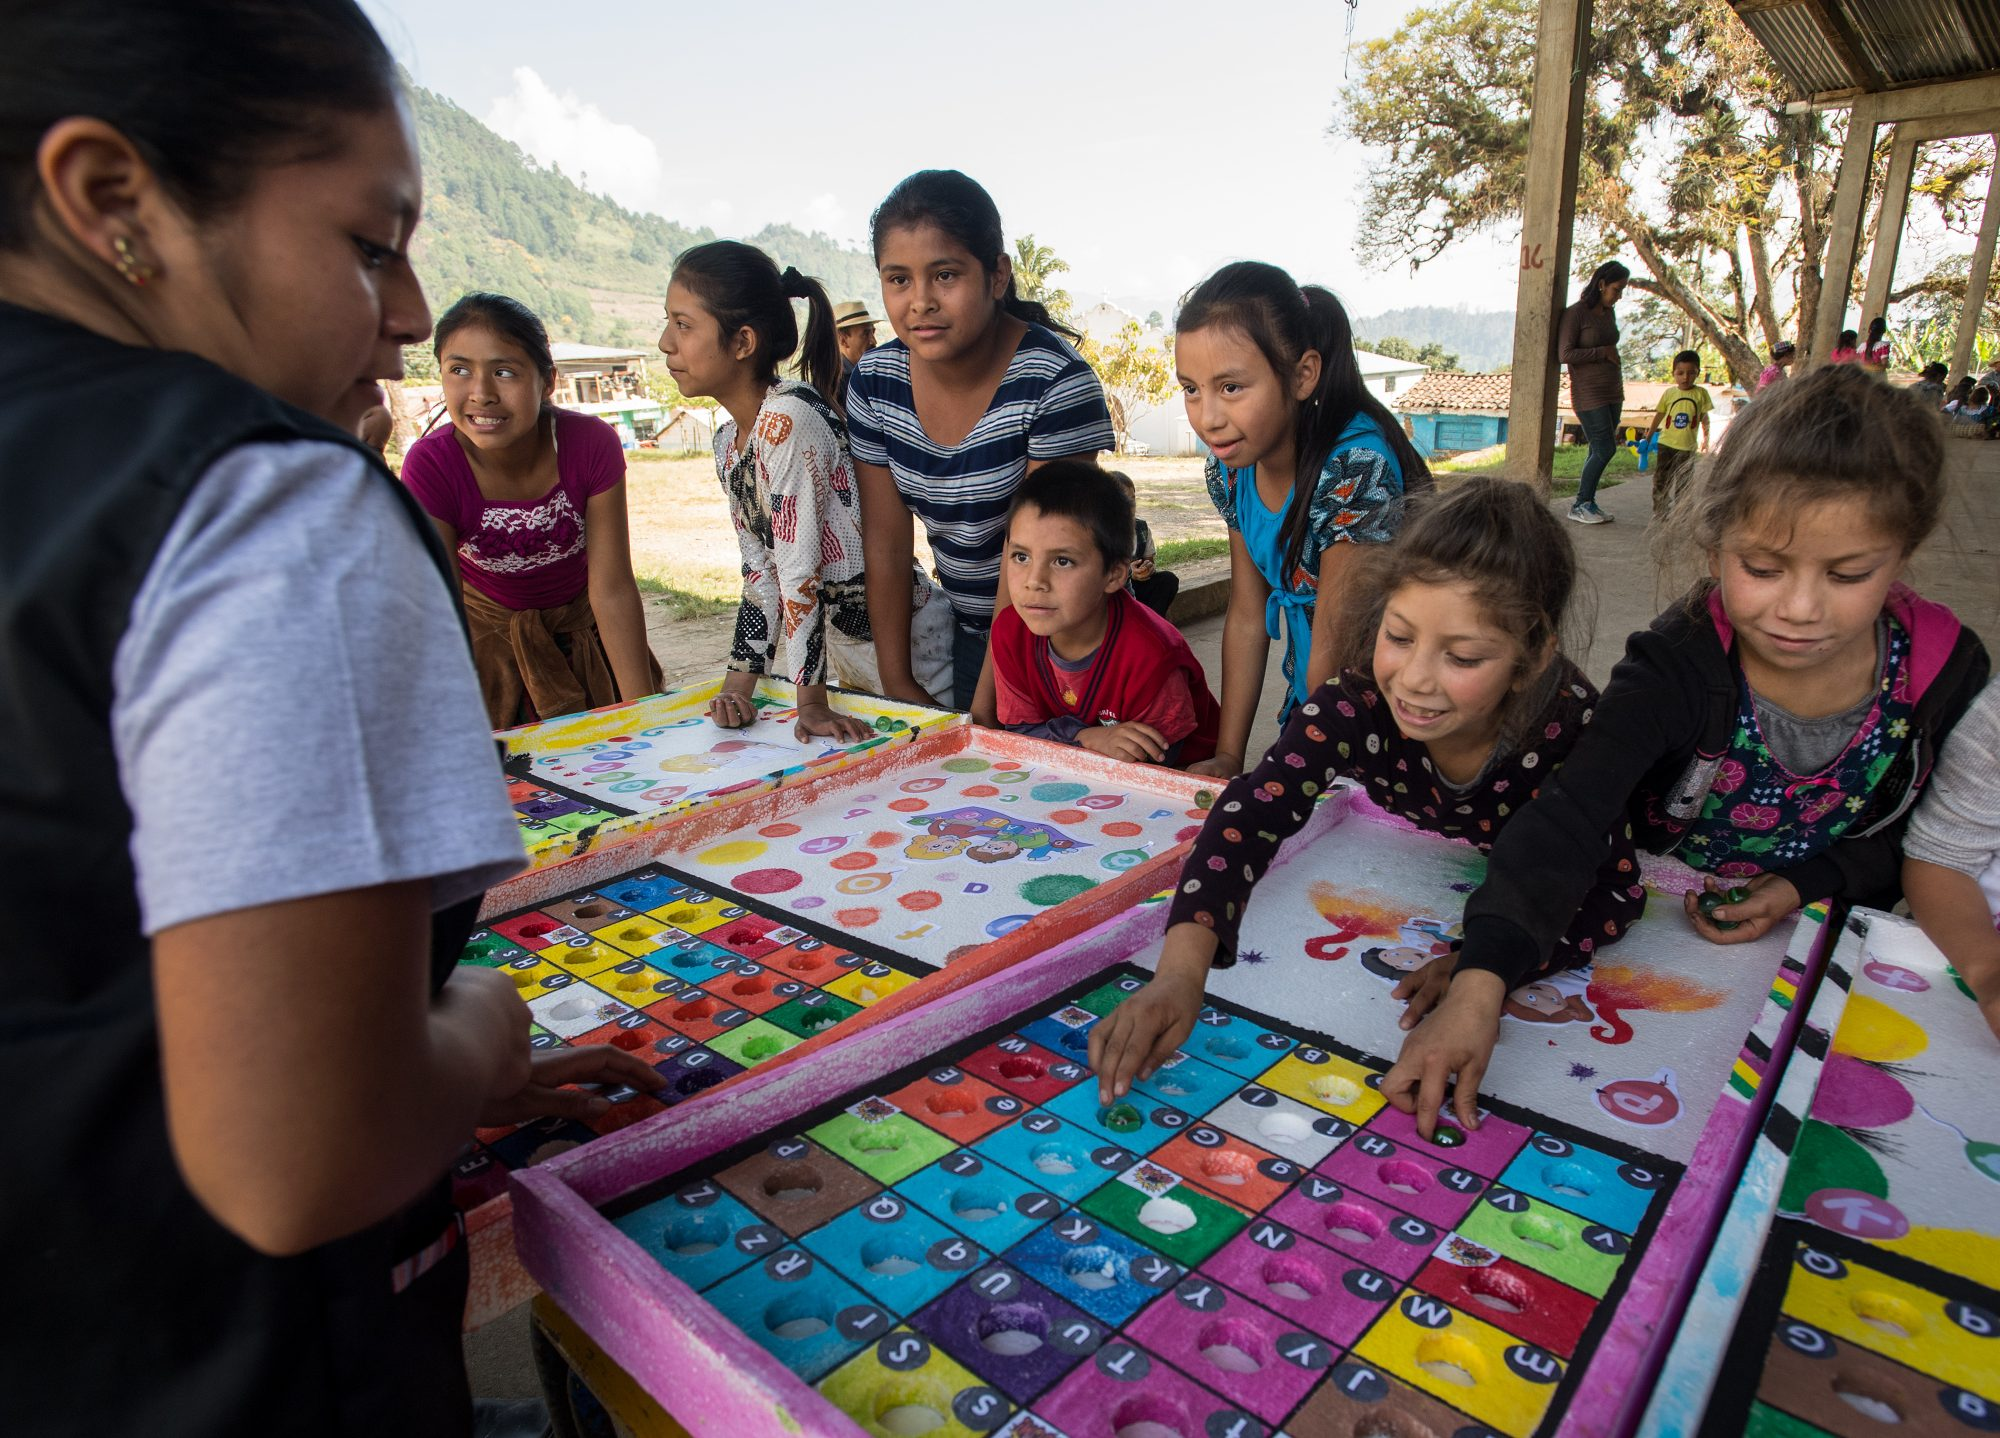 """In the """"Marble Letter"""" game at Save the Children's reading festival, children are challenged to recite a word that begins with the letter their marble lands in. The materials for the game are made locally by the volunteers in Guatemala's remote mountainous region of Quiche."""